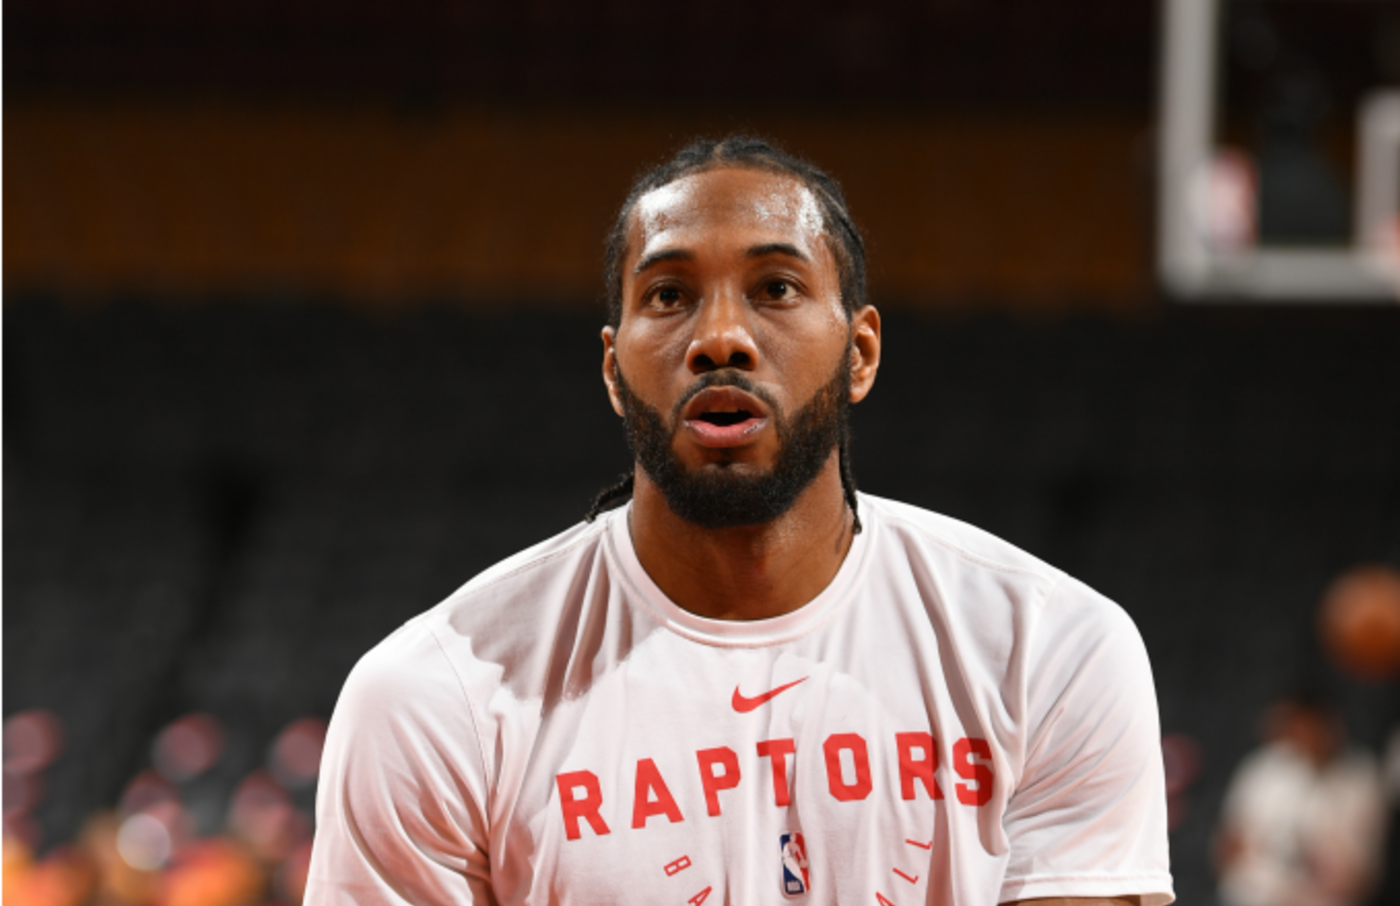 Kawhi Leonard #2 of the Toronto Raptors